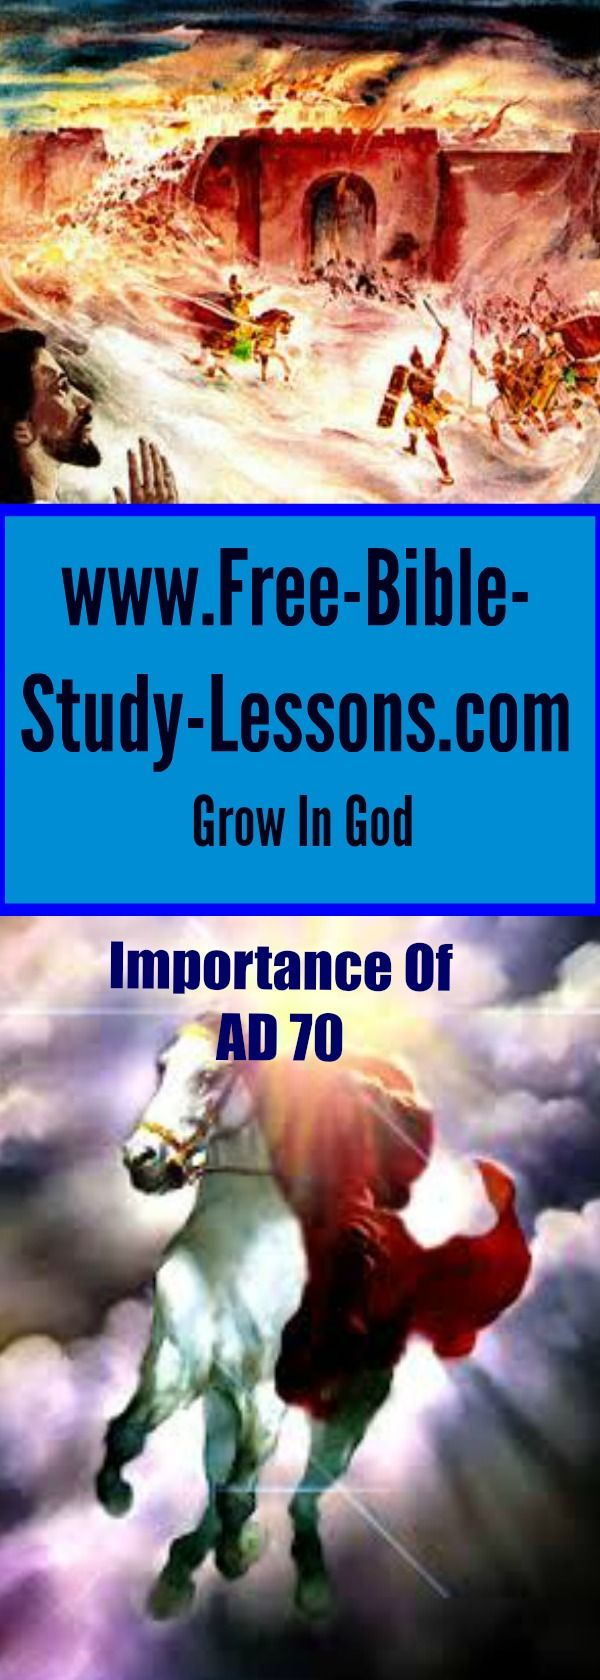 Understanding the importance of AD 70 sheds light on confusing Scriptures and gives a fuller understanding of the context in which the New Testament was written. #70AD #fallofJerusalem #bibleprophecy